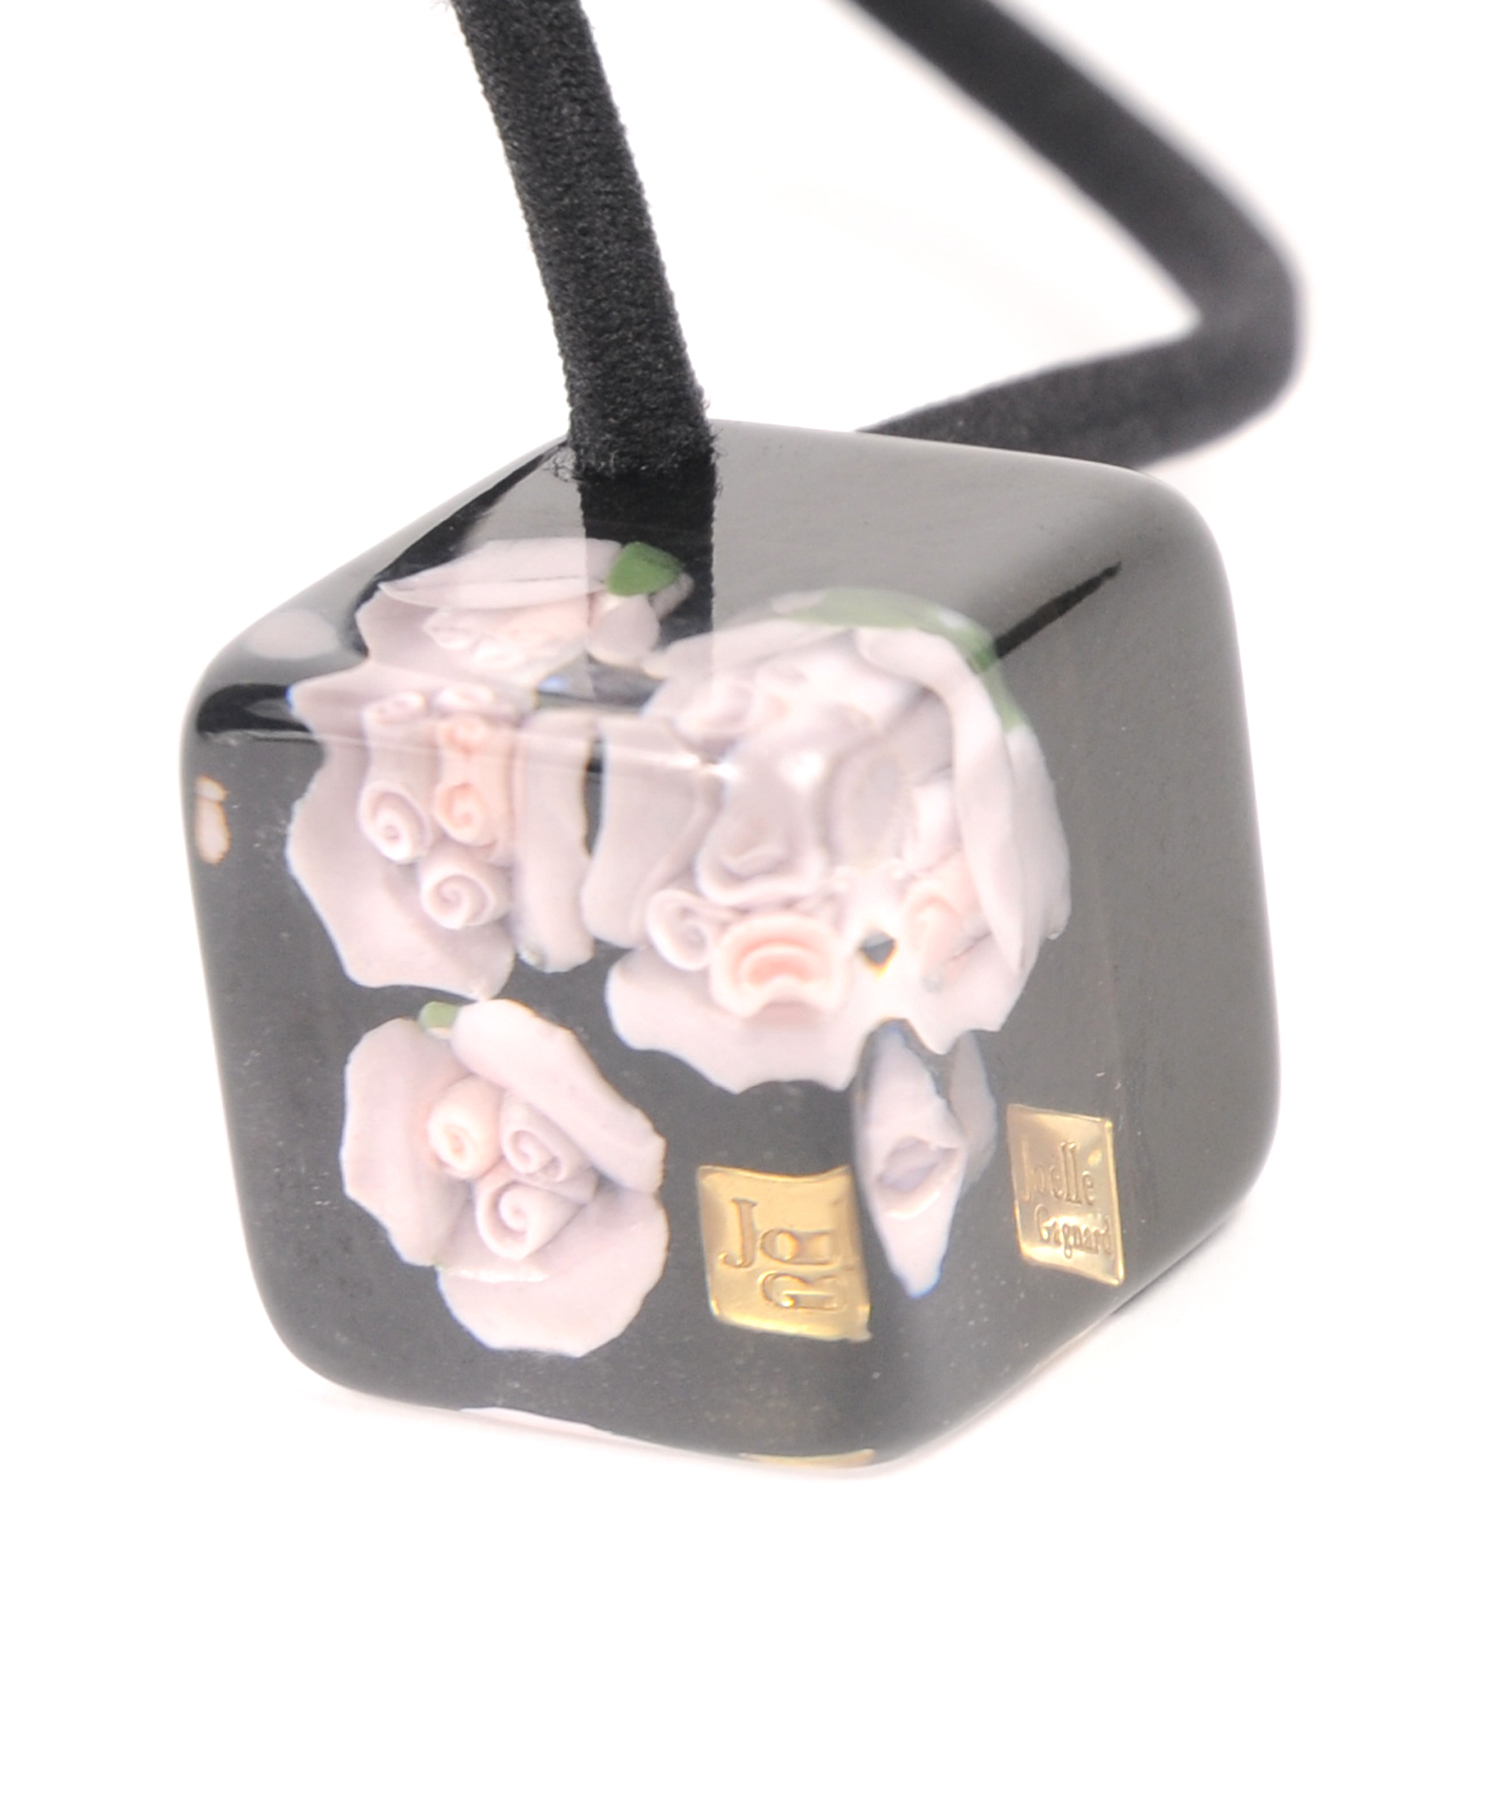 Joe18SM-42 flower cube gom